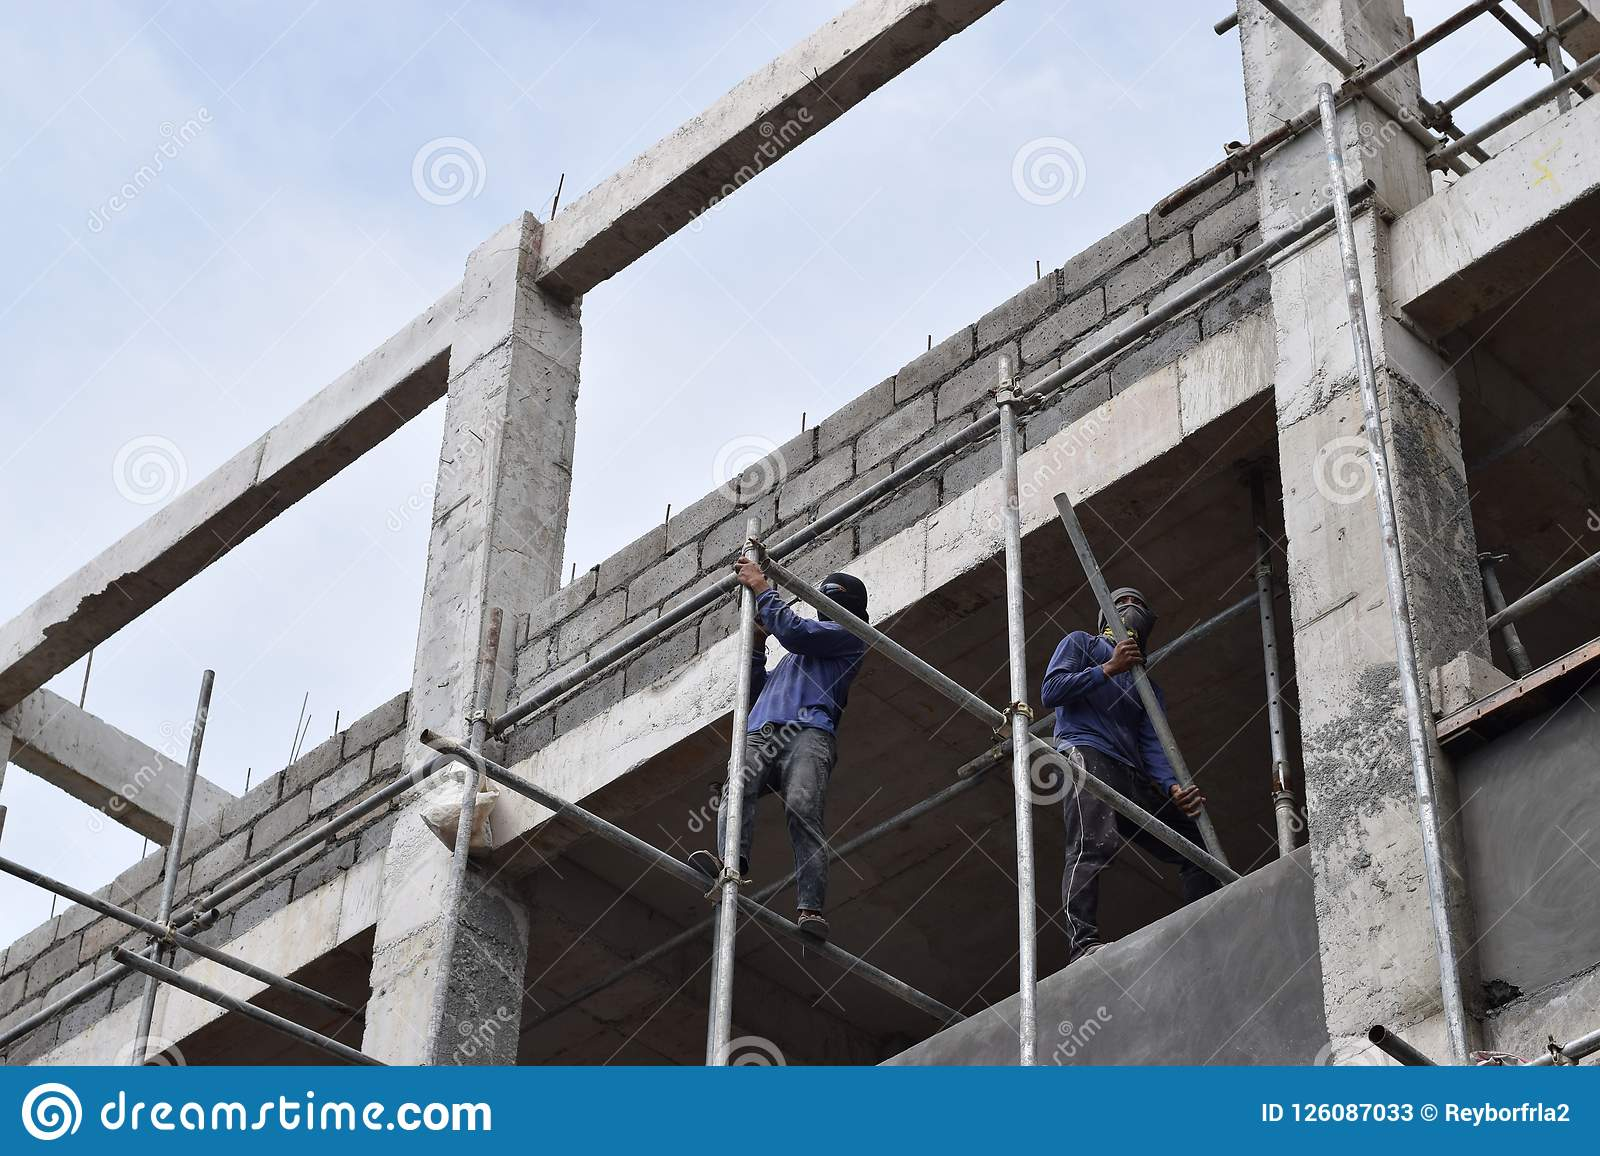 Filipino Construction Workers Installing Metal Pipe